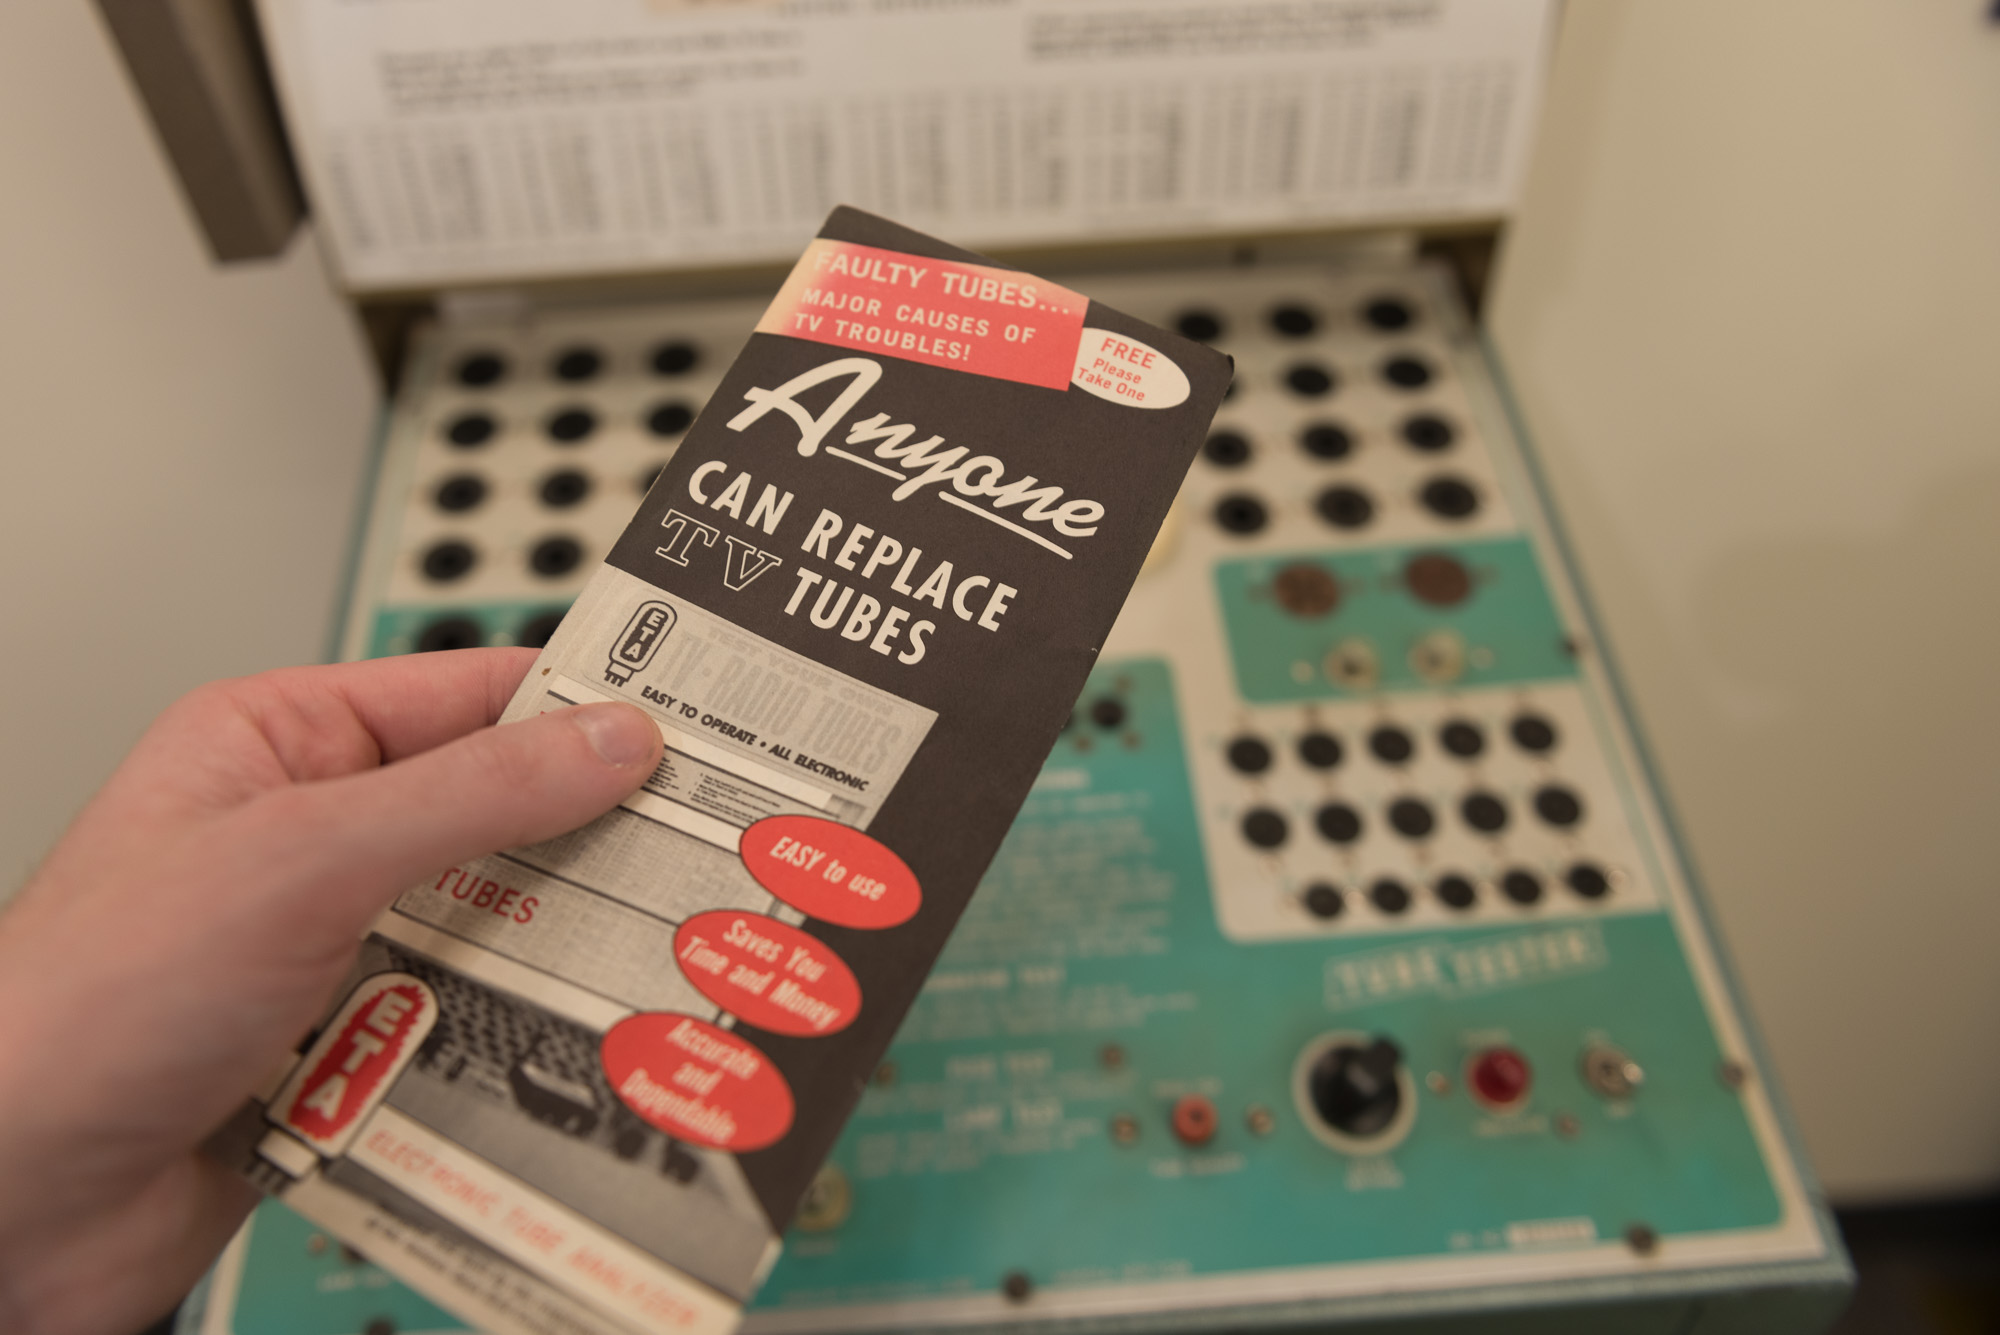 A vintage electronics pamphlet held in a hand above a piece of vintage electrical equipment. The pamphlet reads 'Anyone can replace TV tubes'.